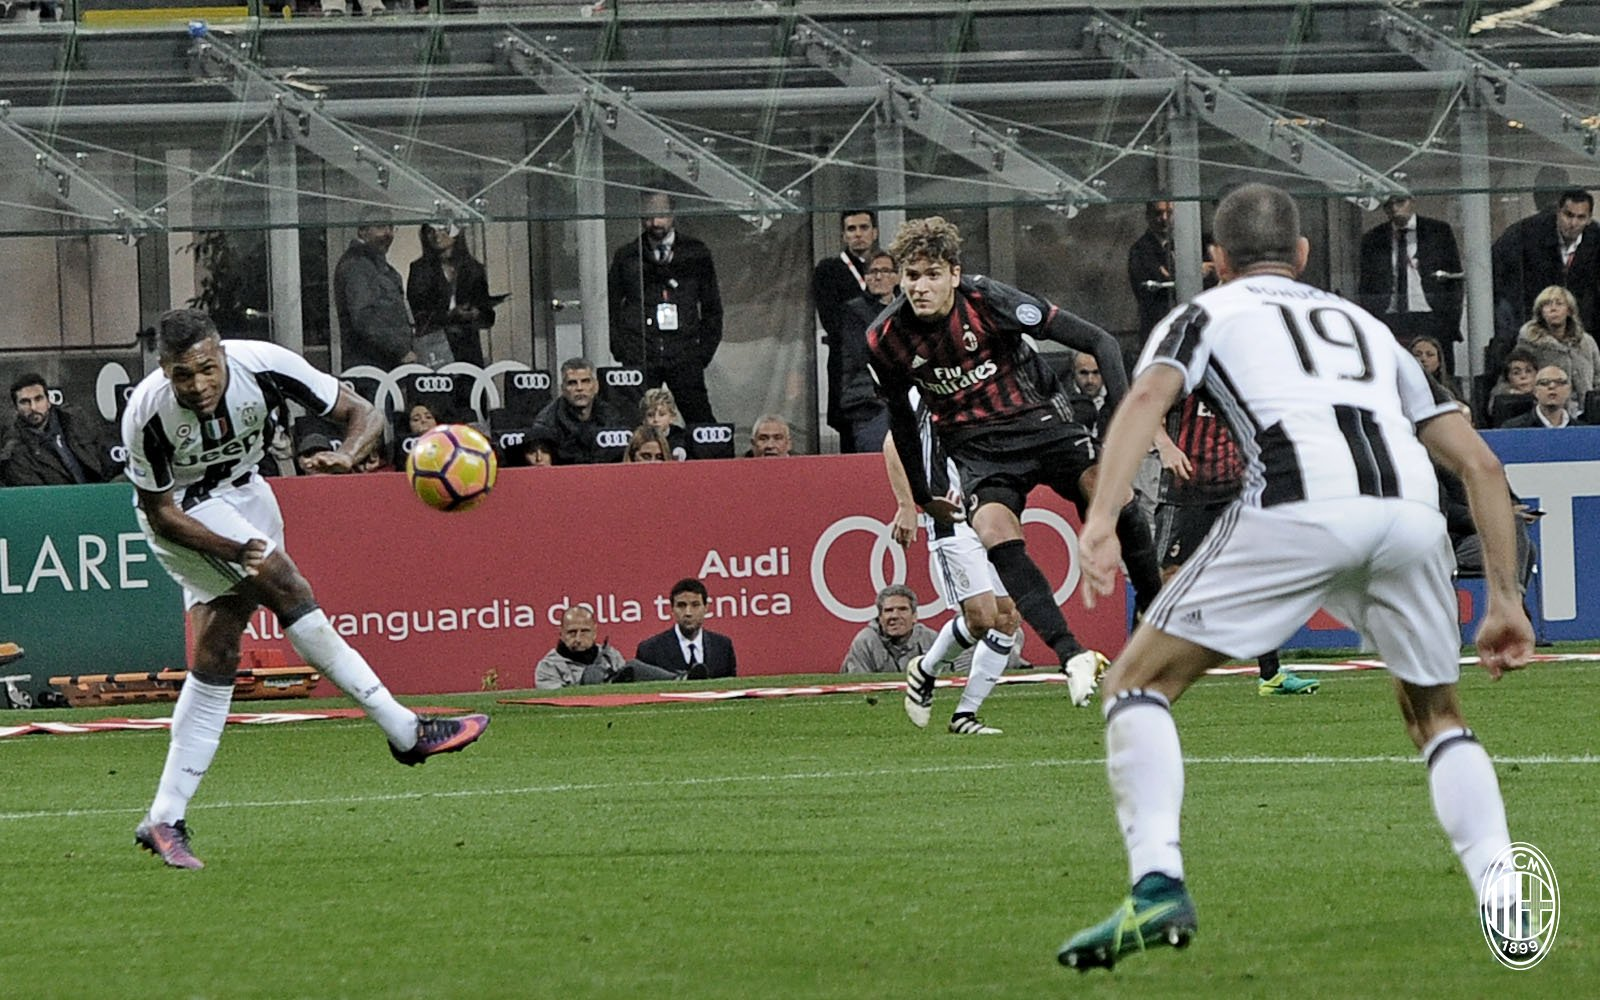 Milan End Juventus Streak With San Siro Defeat